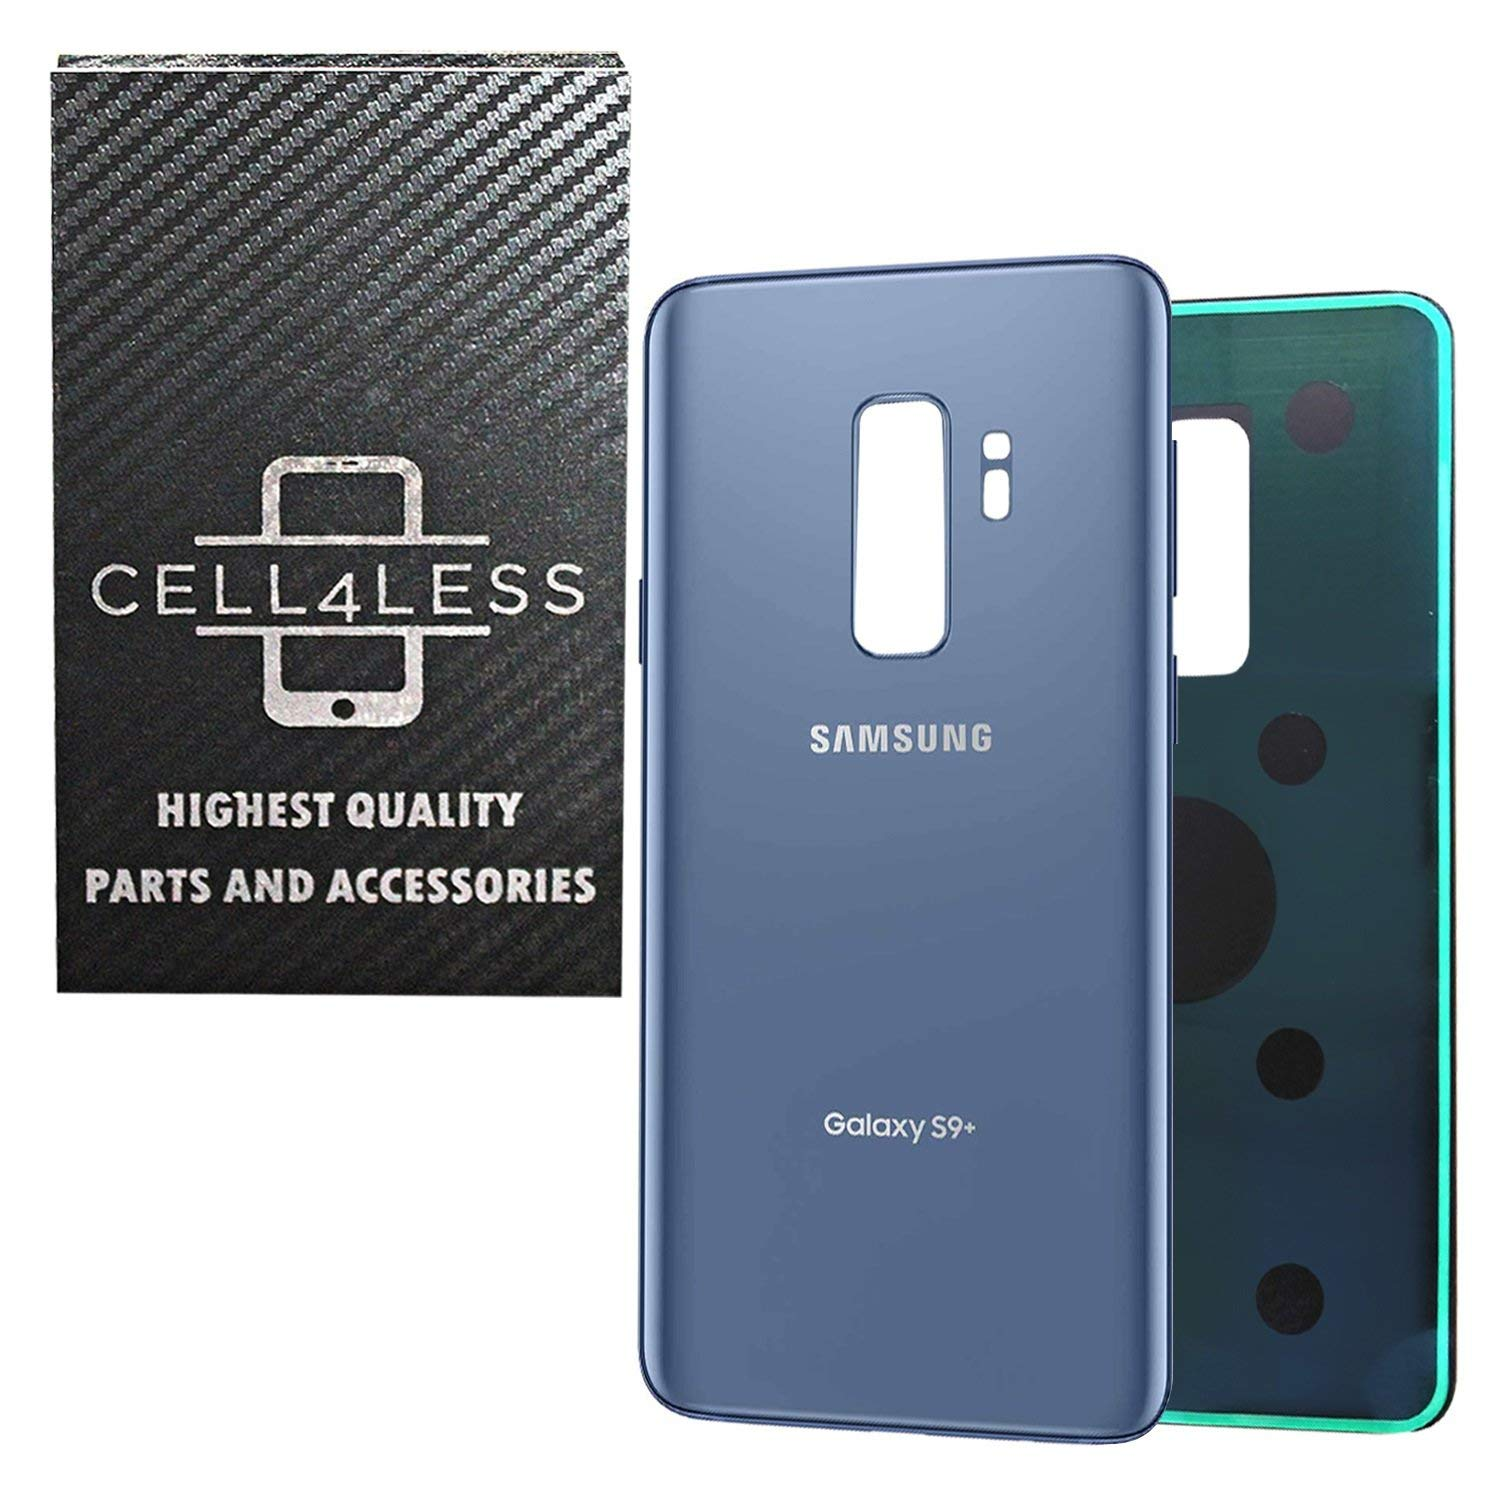 CELL4LESS Compatible Back Glass Cover Back Battery Door w/Pre-Installed Adhesive Replacement for Samsung Galaxy S9 PLUS OEM - All Models G965 All Carriers- 2 Logo - OEM Replacement (BLUE)